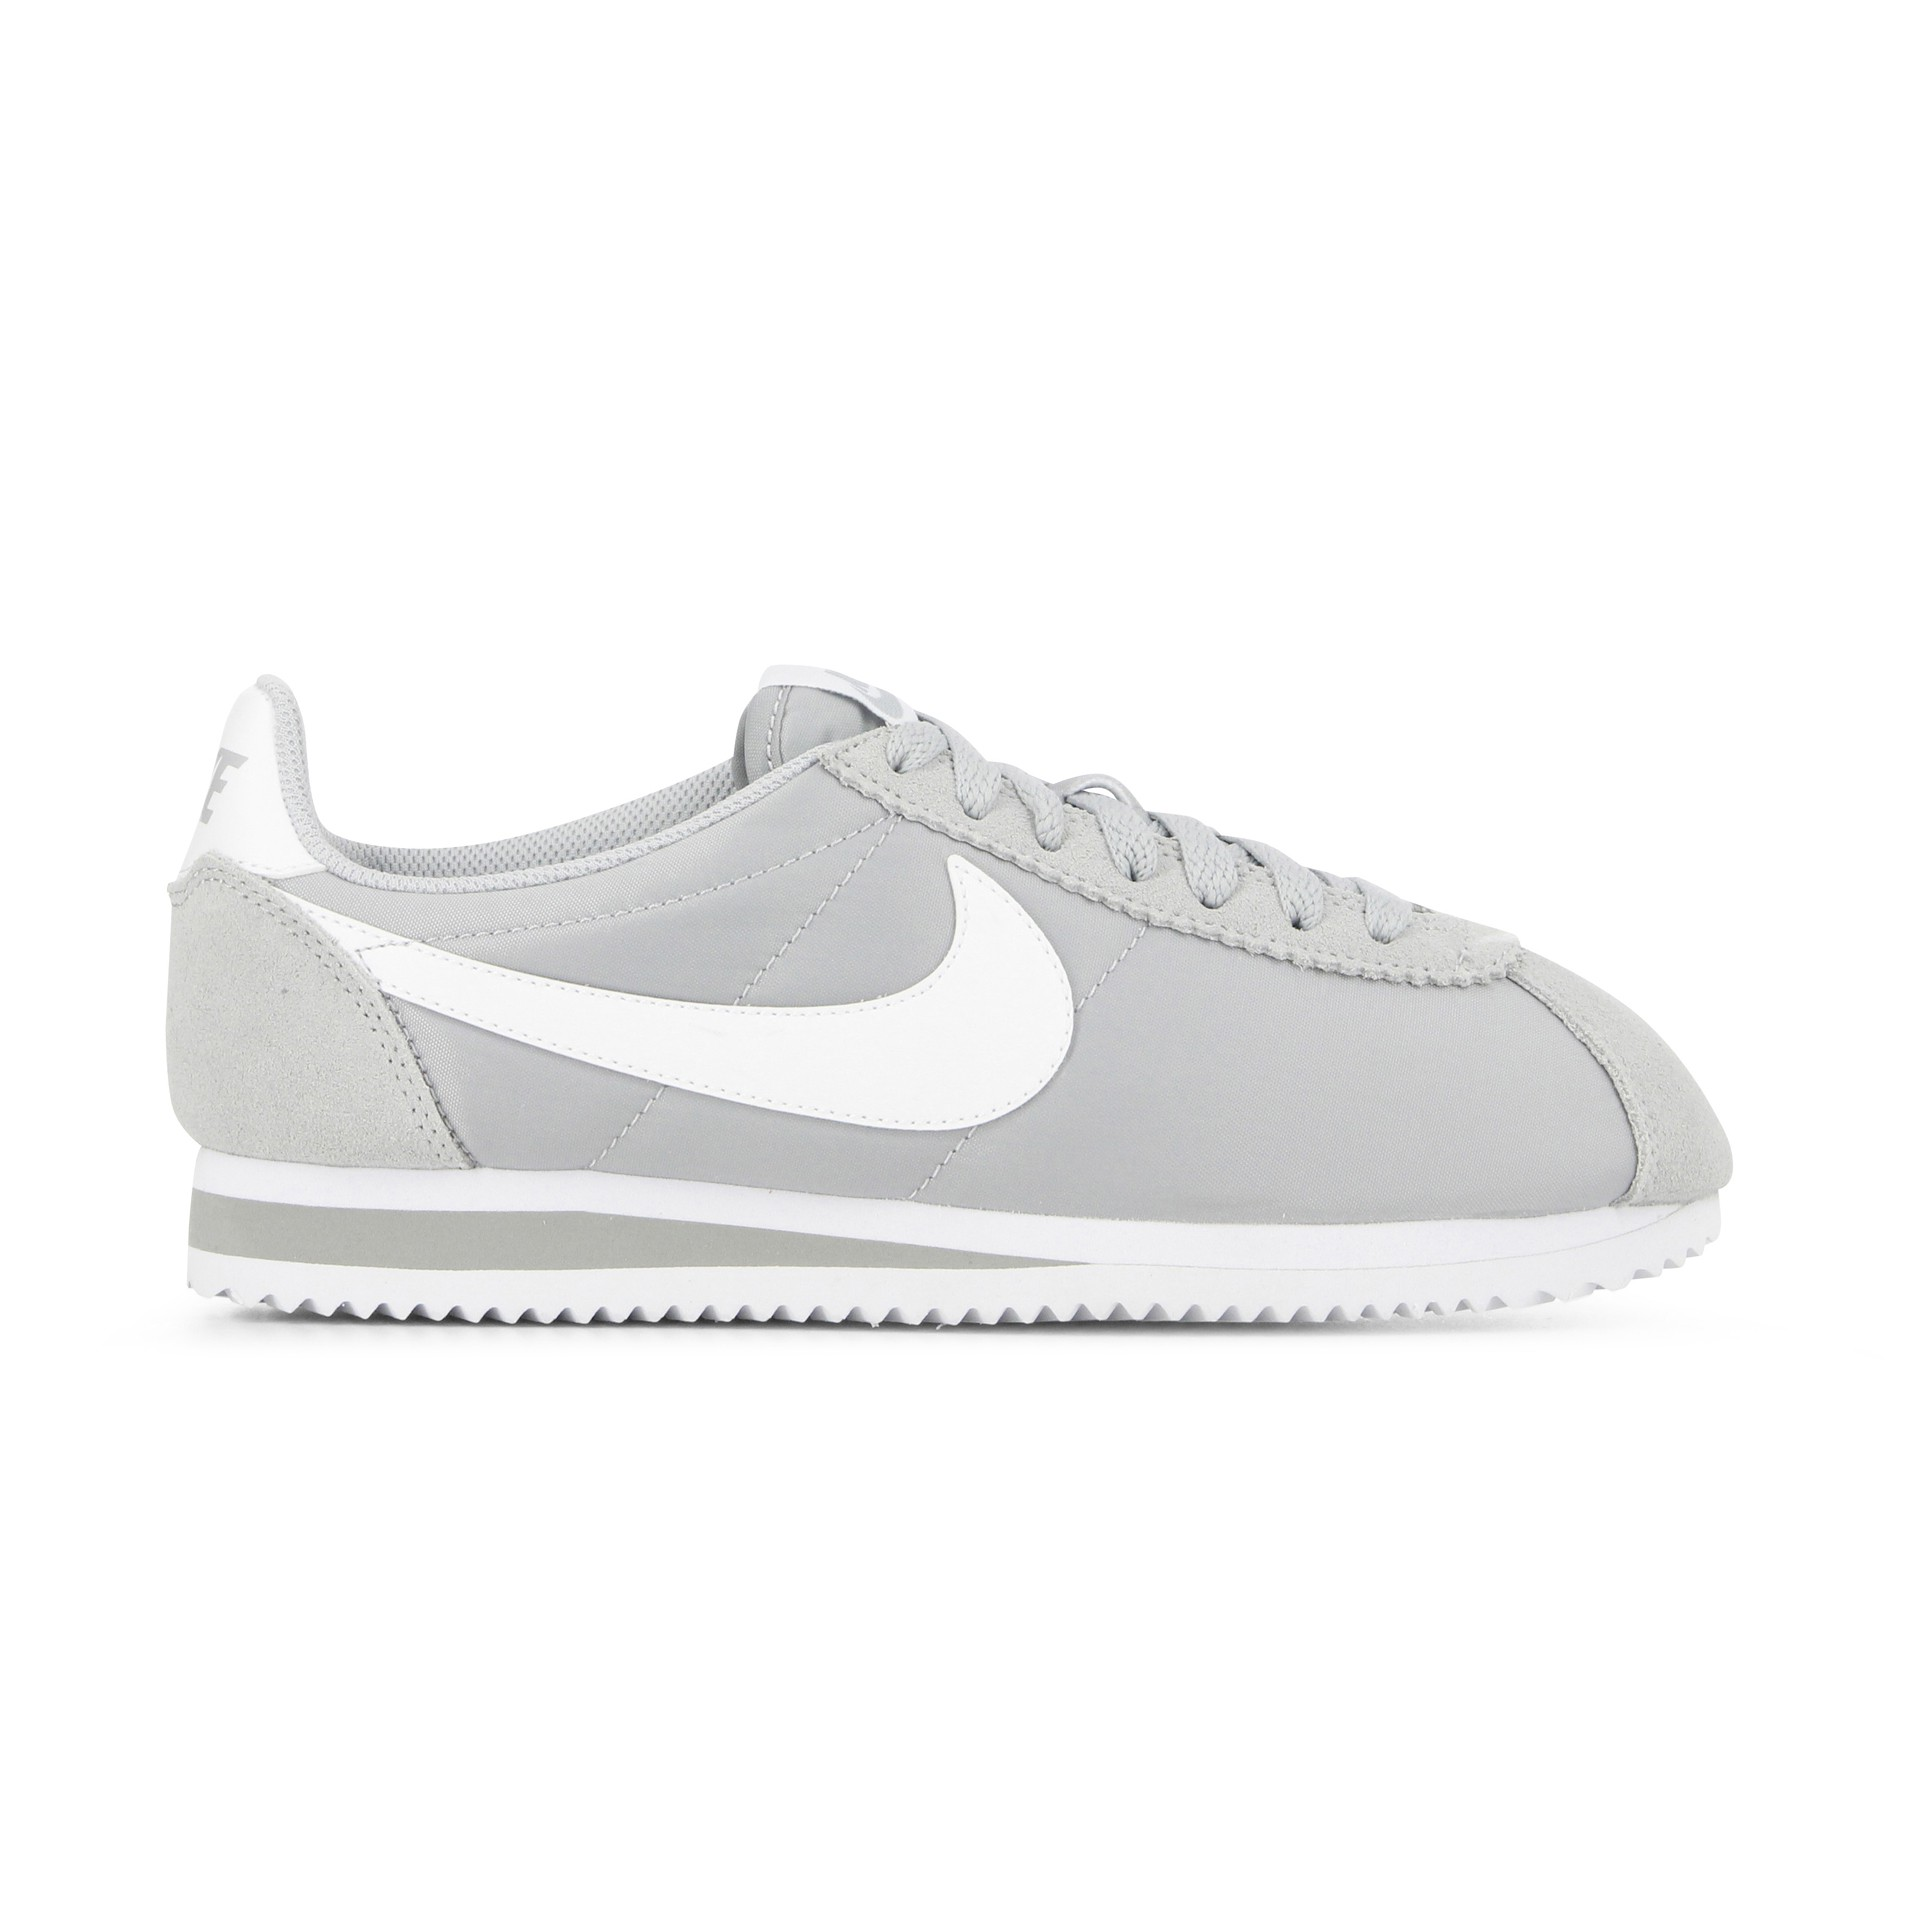 24e562f1a48 promo code for nike cortez gris hommes 4637f 1ca9a